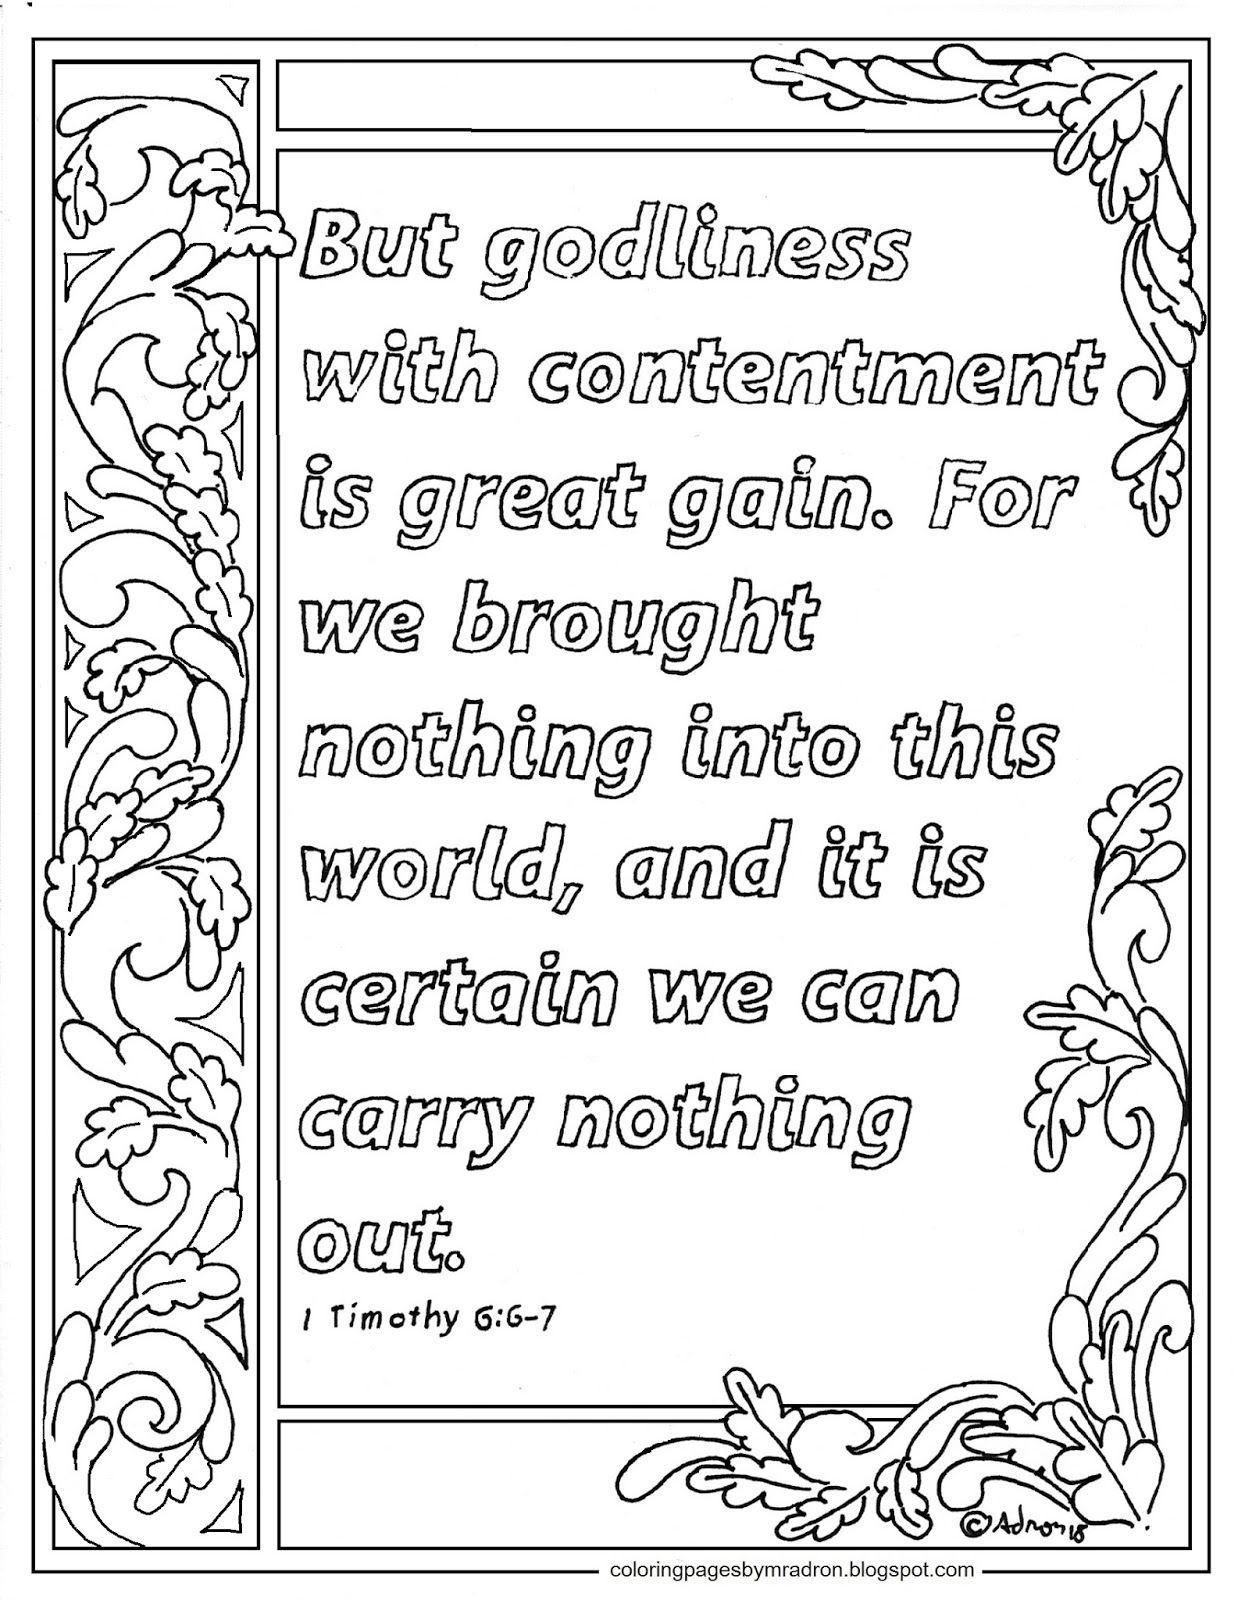 1 Timothy 6 6 7 Jpg 1 238 1 600 Pixels Printable Coloring Pages